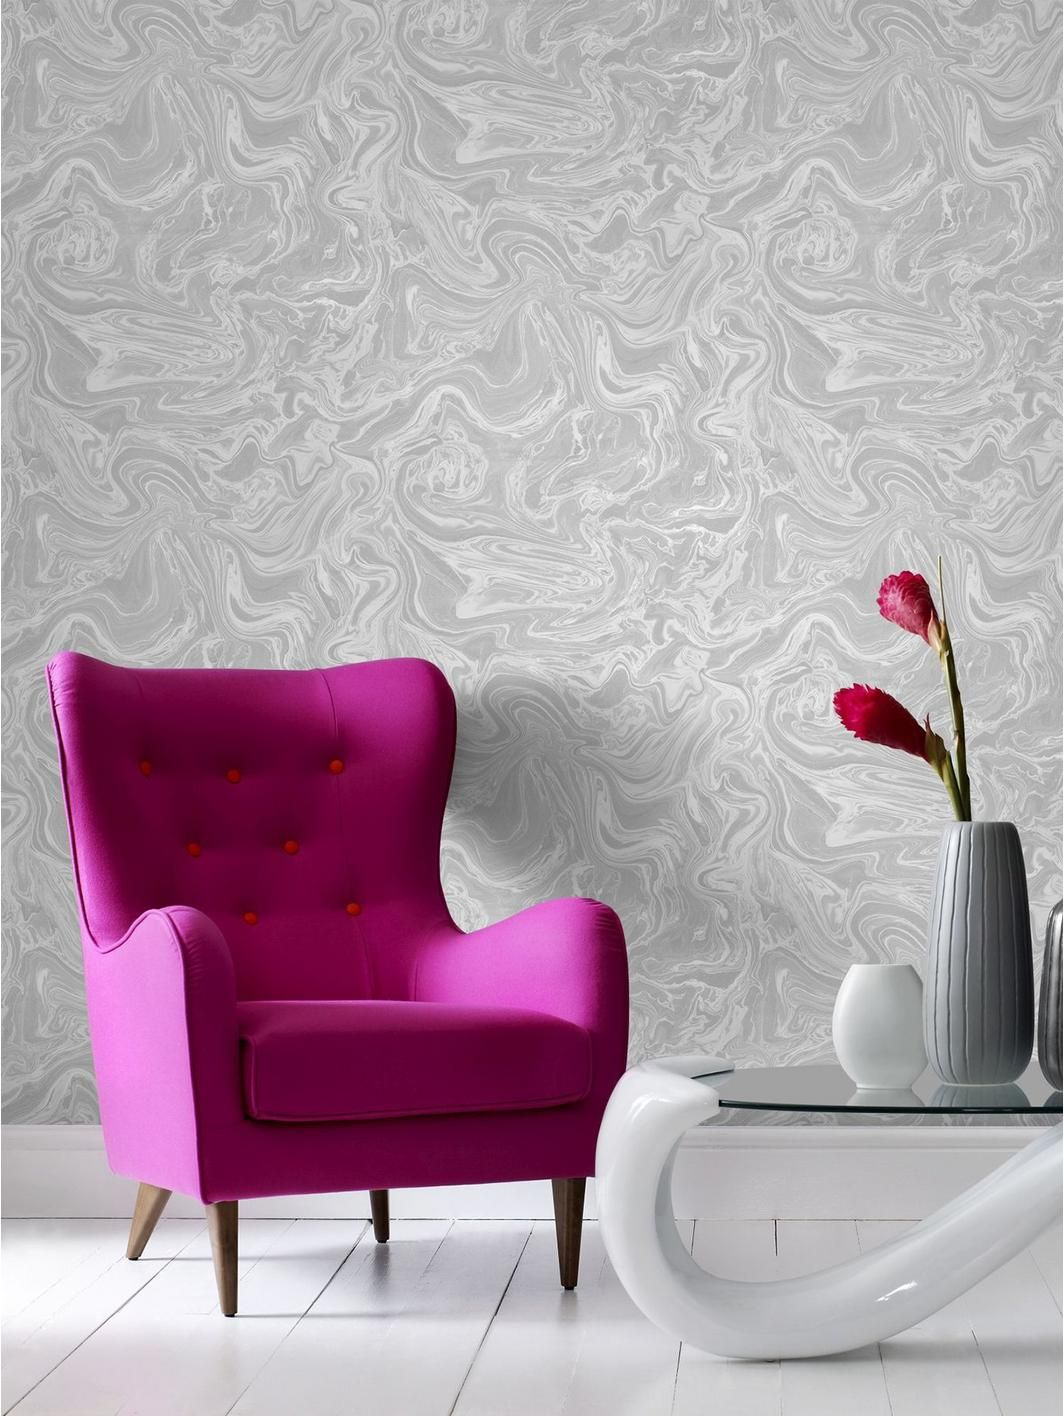 Best Wallpaper Marble Swirl - 88488aa687dfcd81bb4bac9324b4af4f  Graphic_621641.jpg